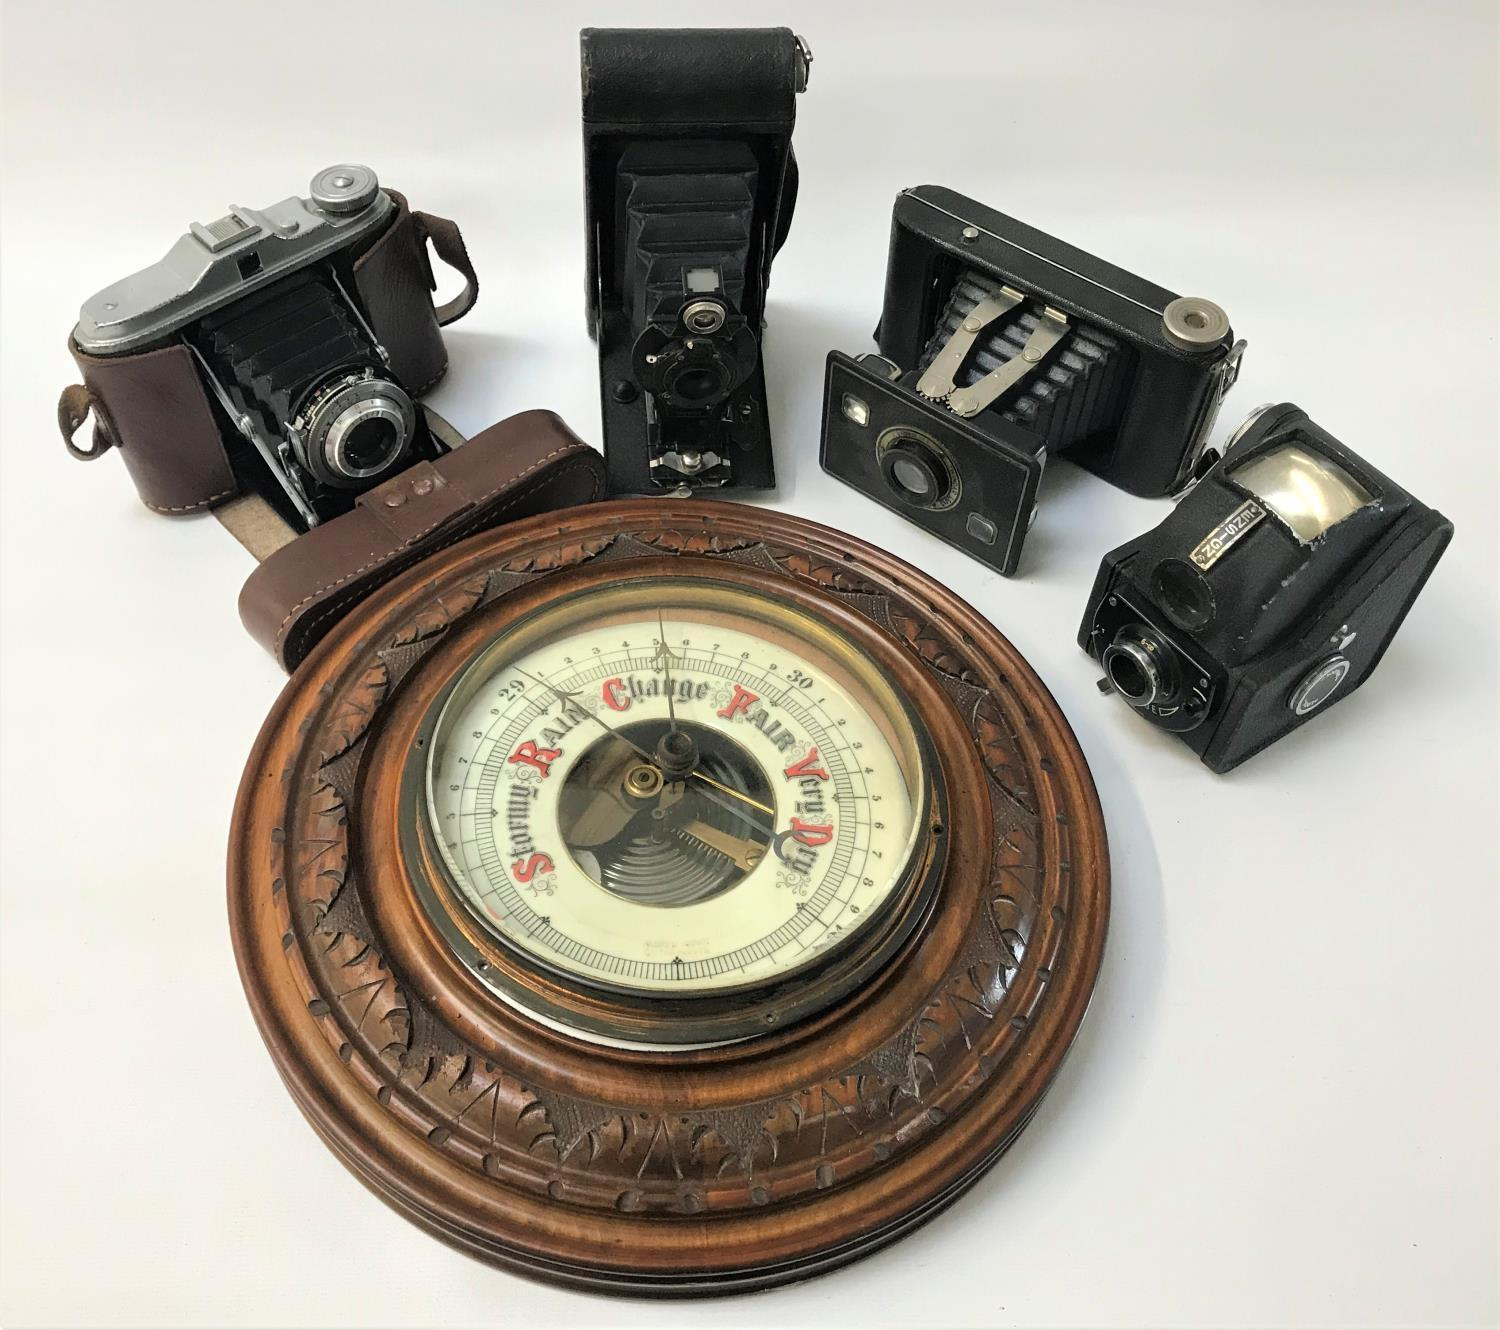 Lot 269 - CIRCULAR WALL BAROMETER together with a cased Agfa Isolette folding camera with accessory, and two